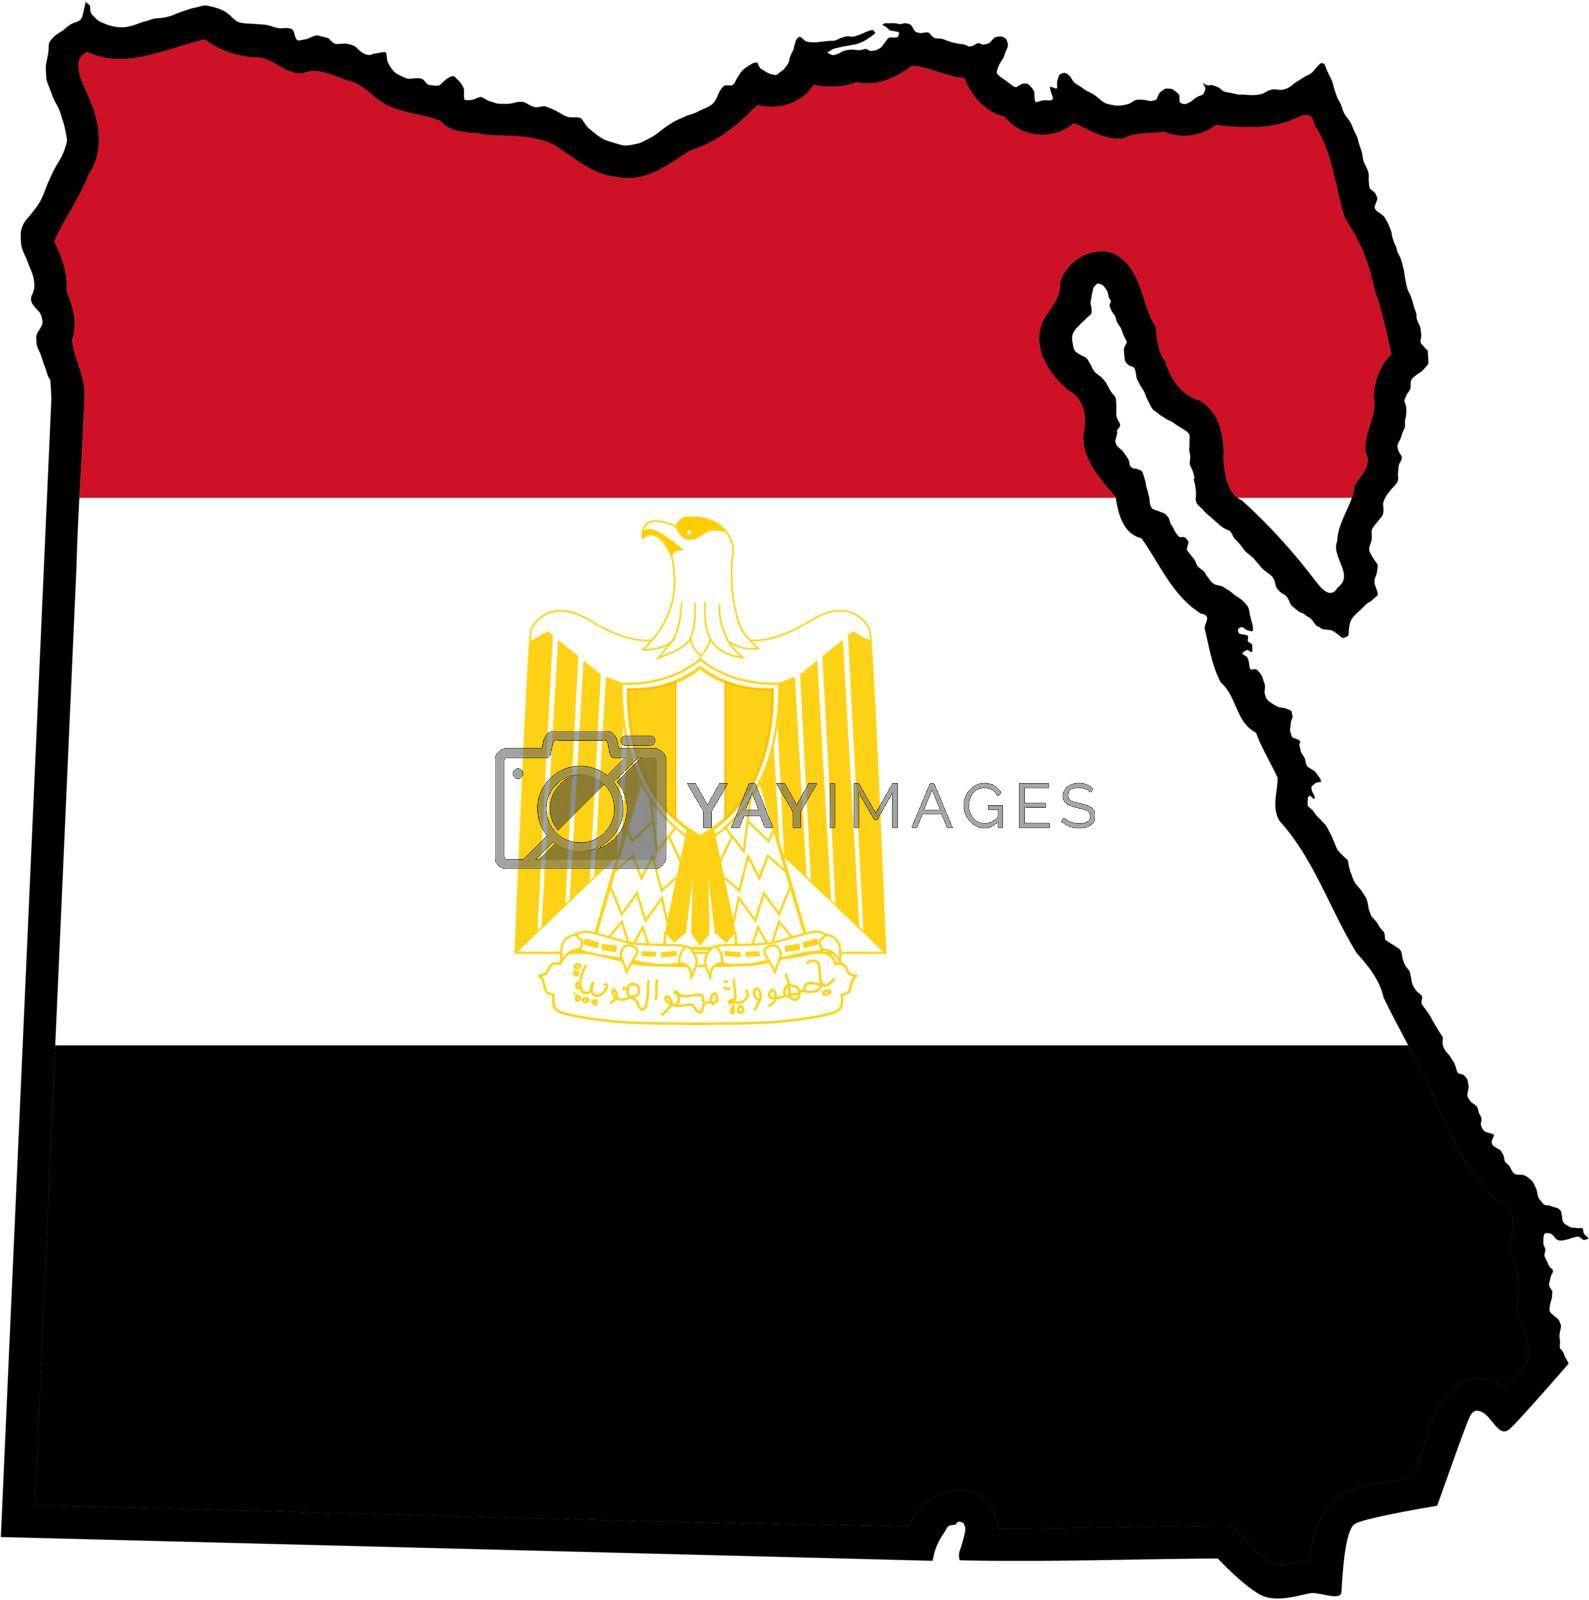 Illustration of flag in map of Egypt